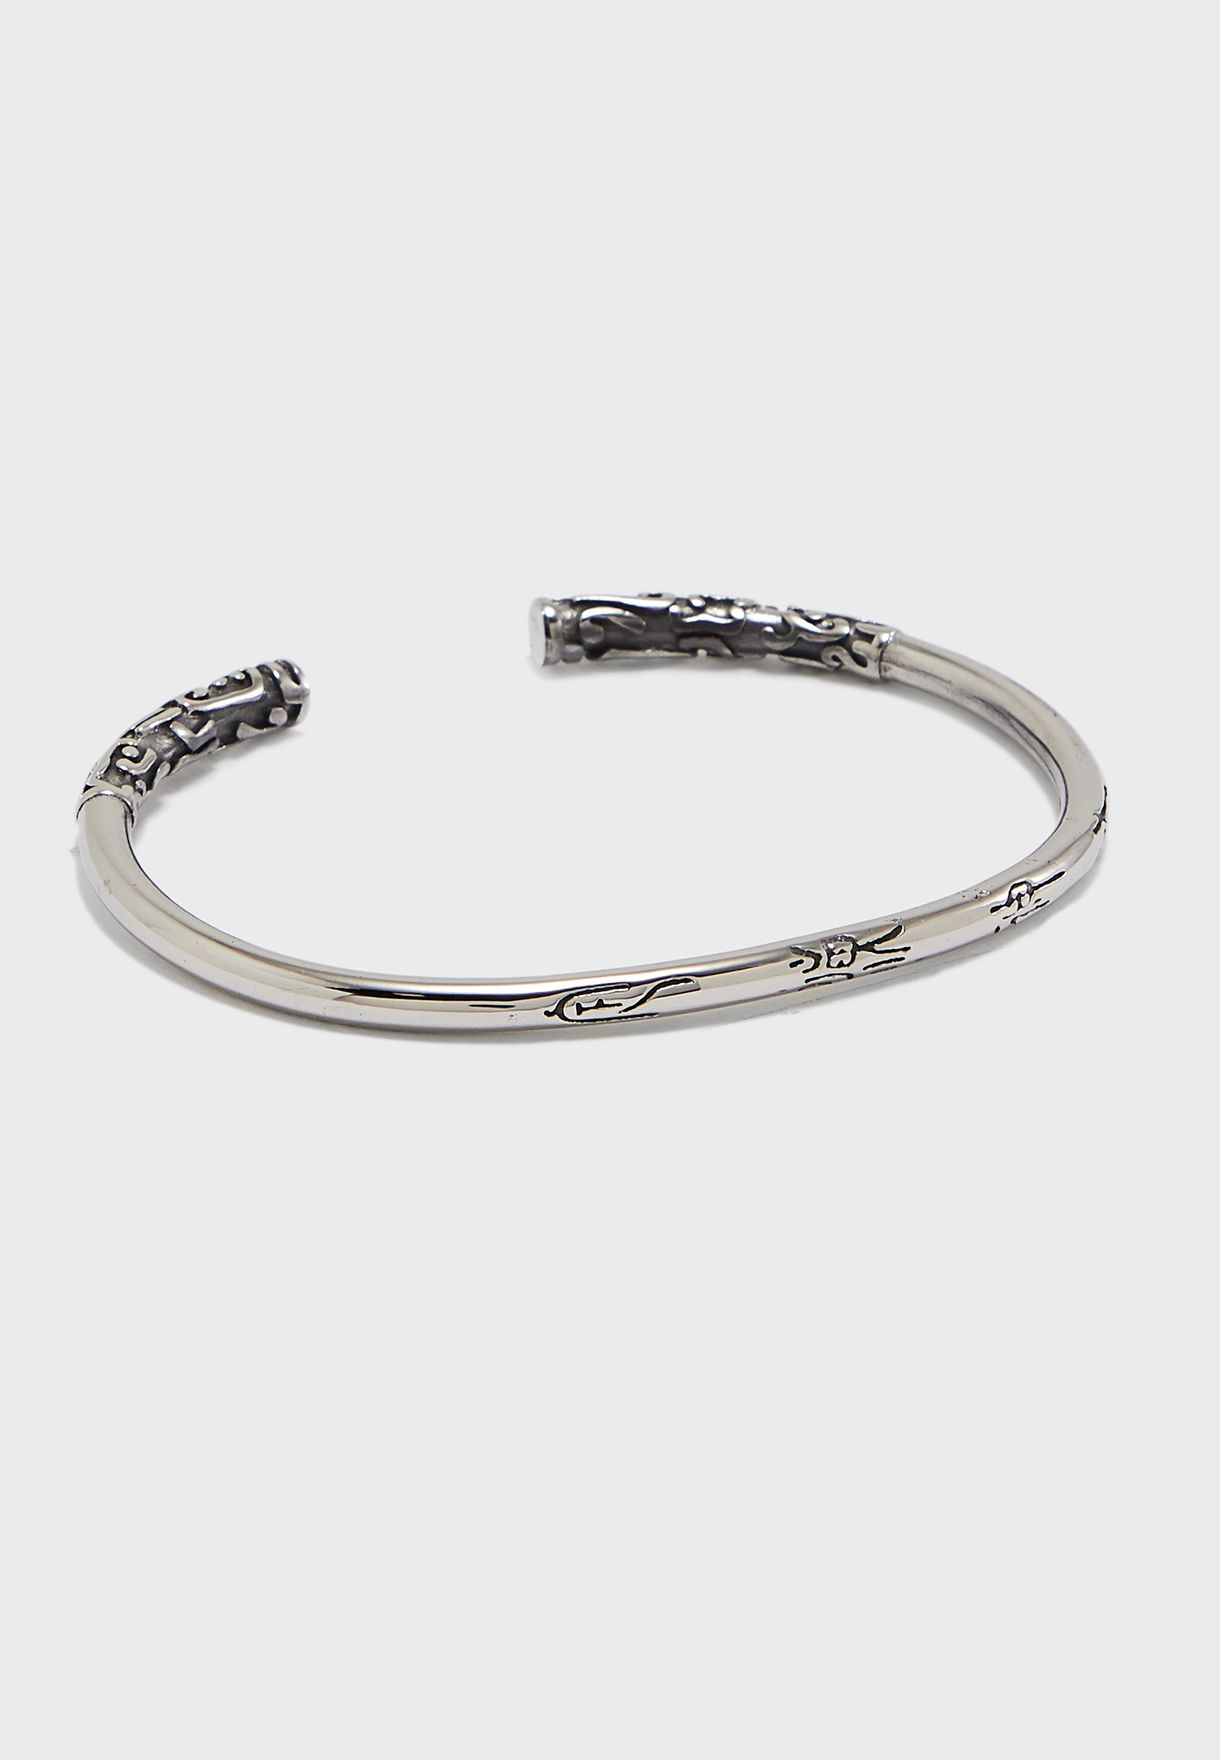 Engraved Edge Cuff Bracelet